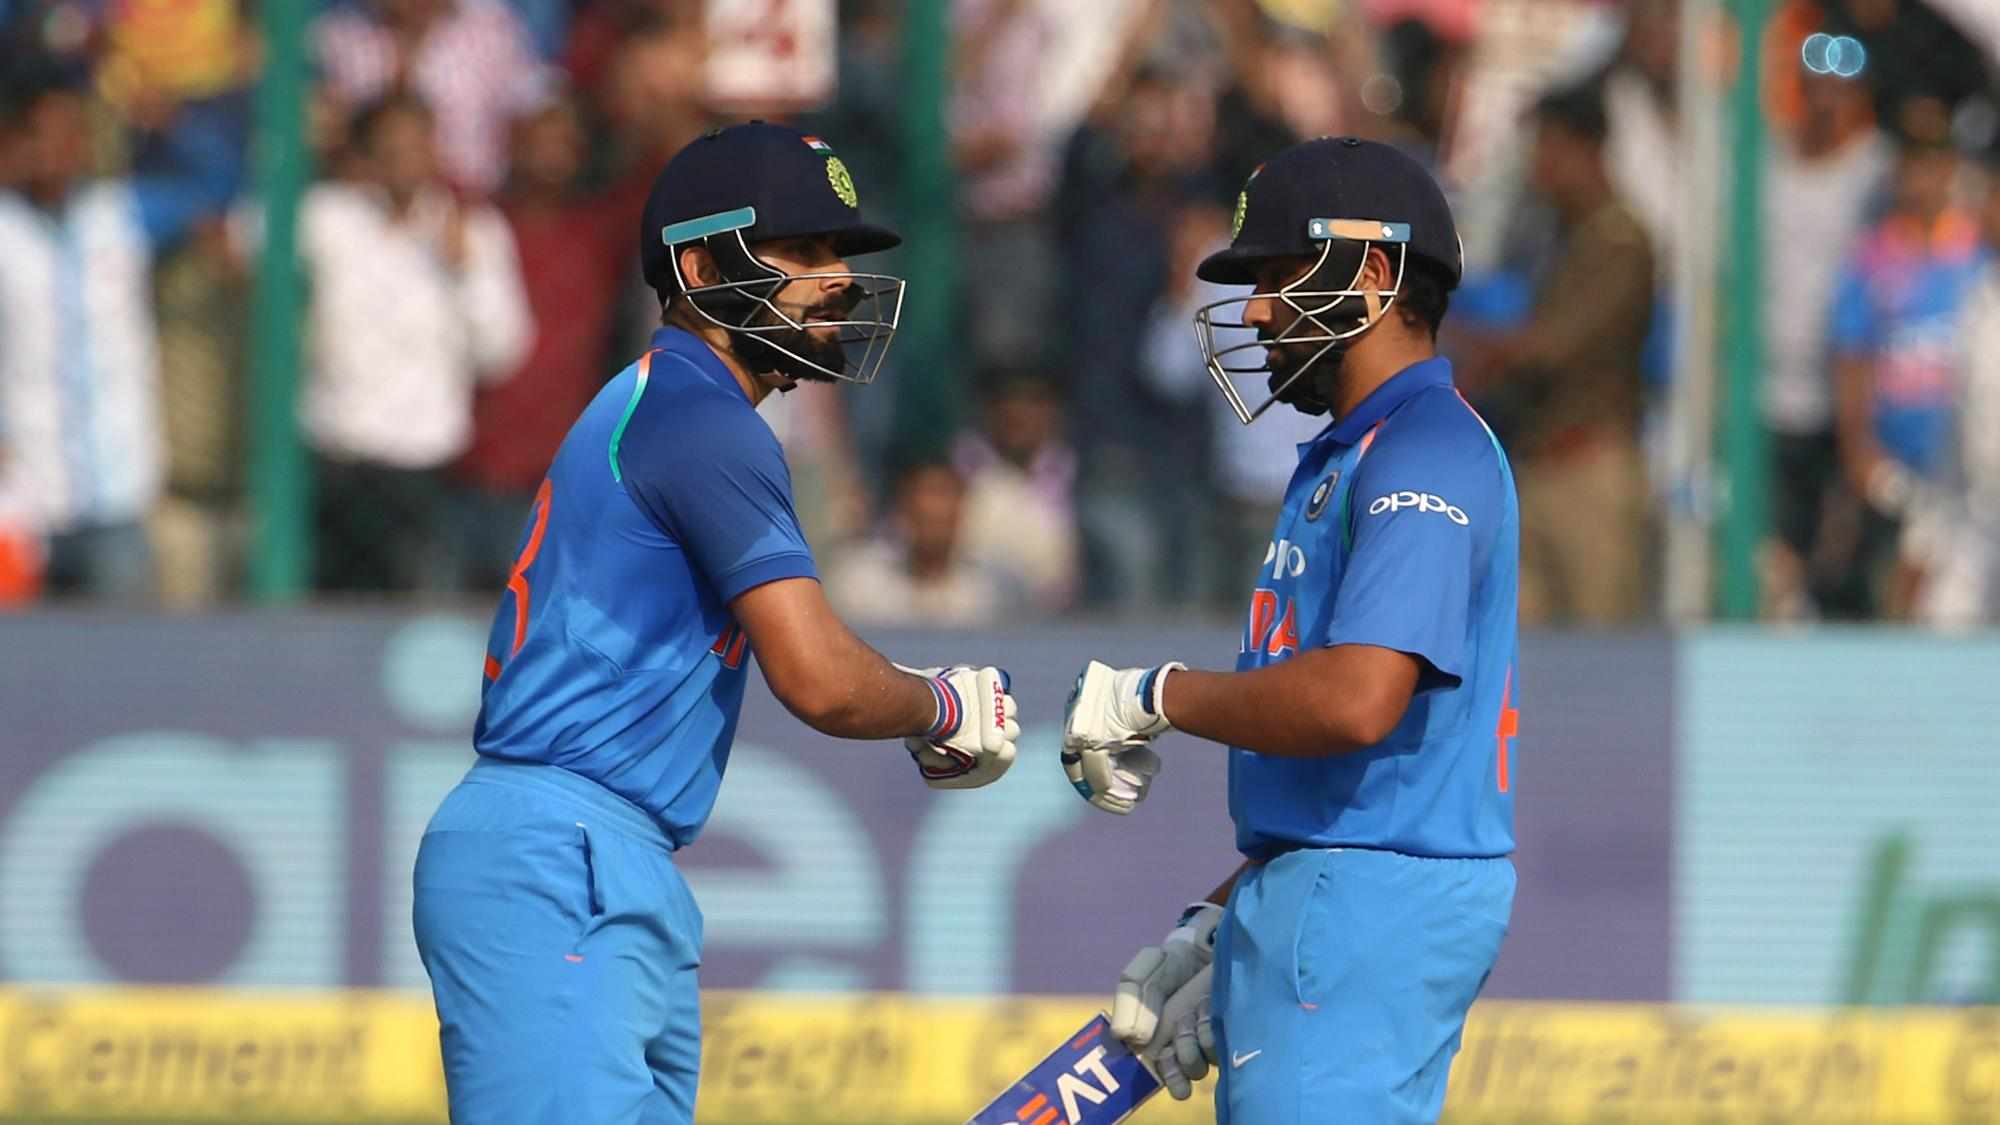 'If they are set, it's tough to get them out' – Jadeja on Kohli-Sharma stand